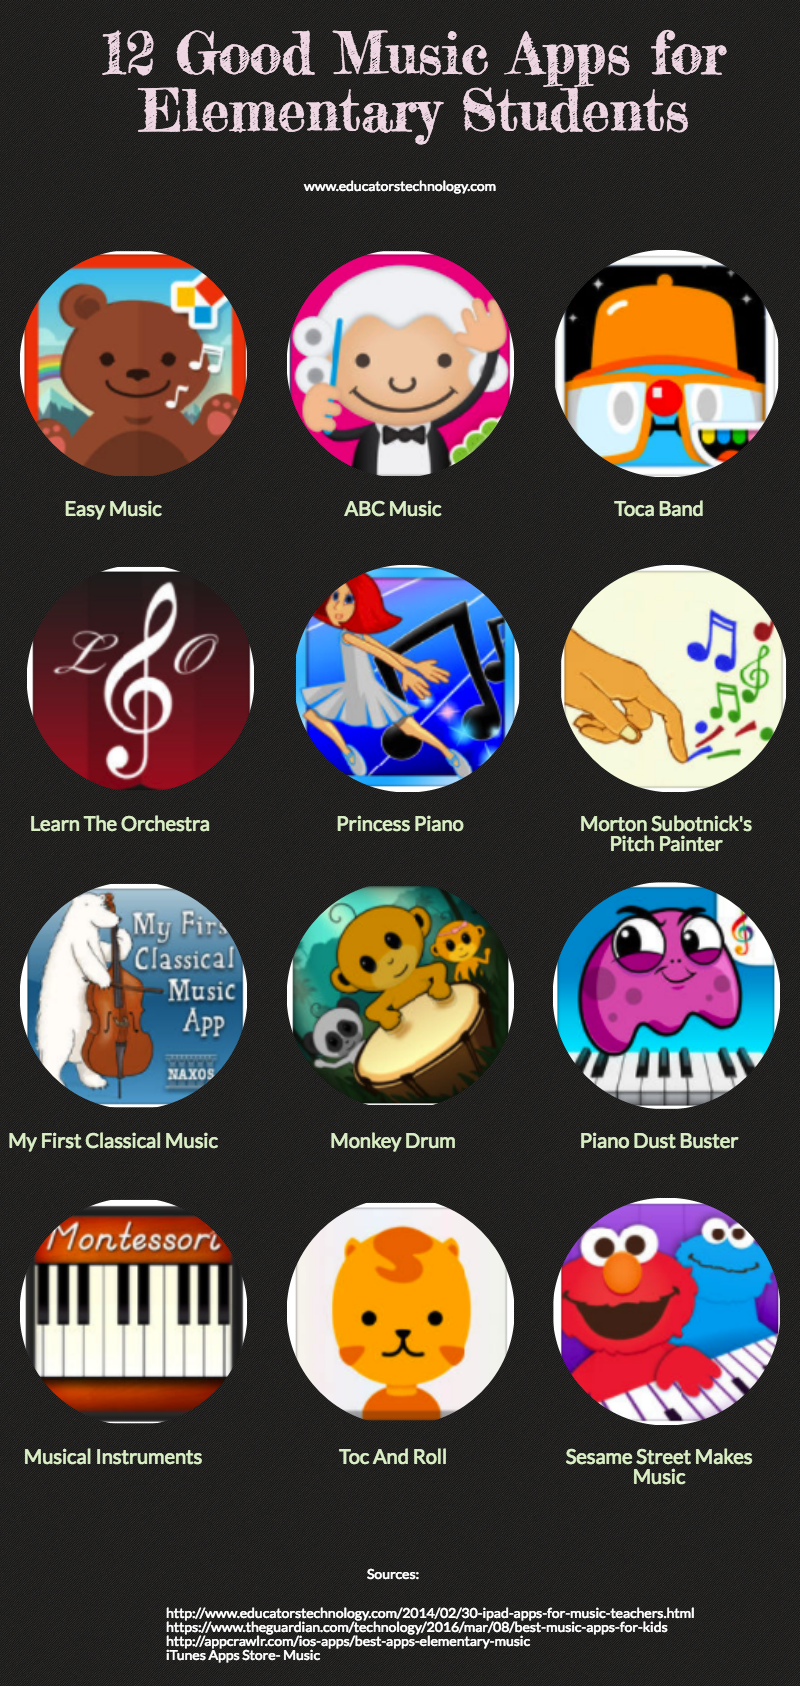 12 Good Music Apps for Elementary Students